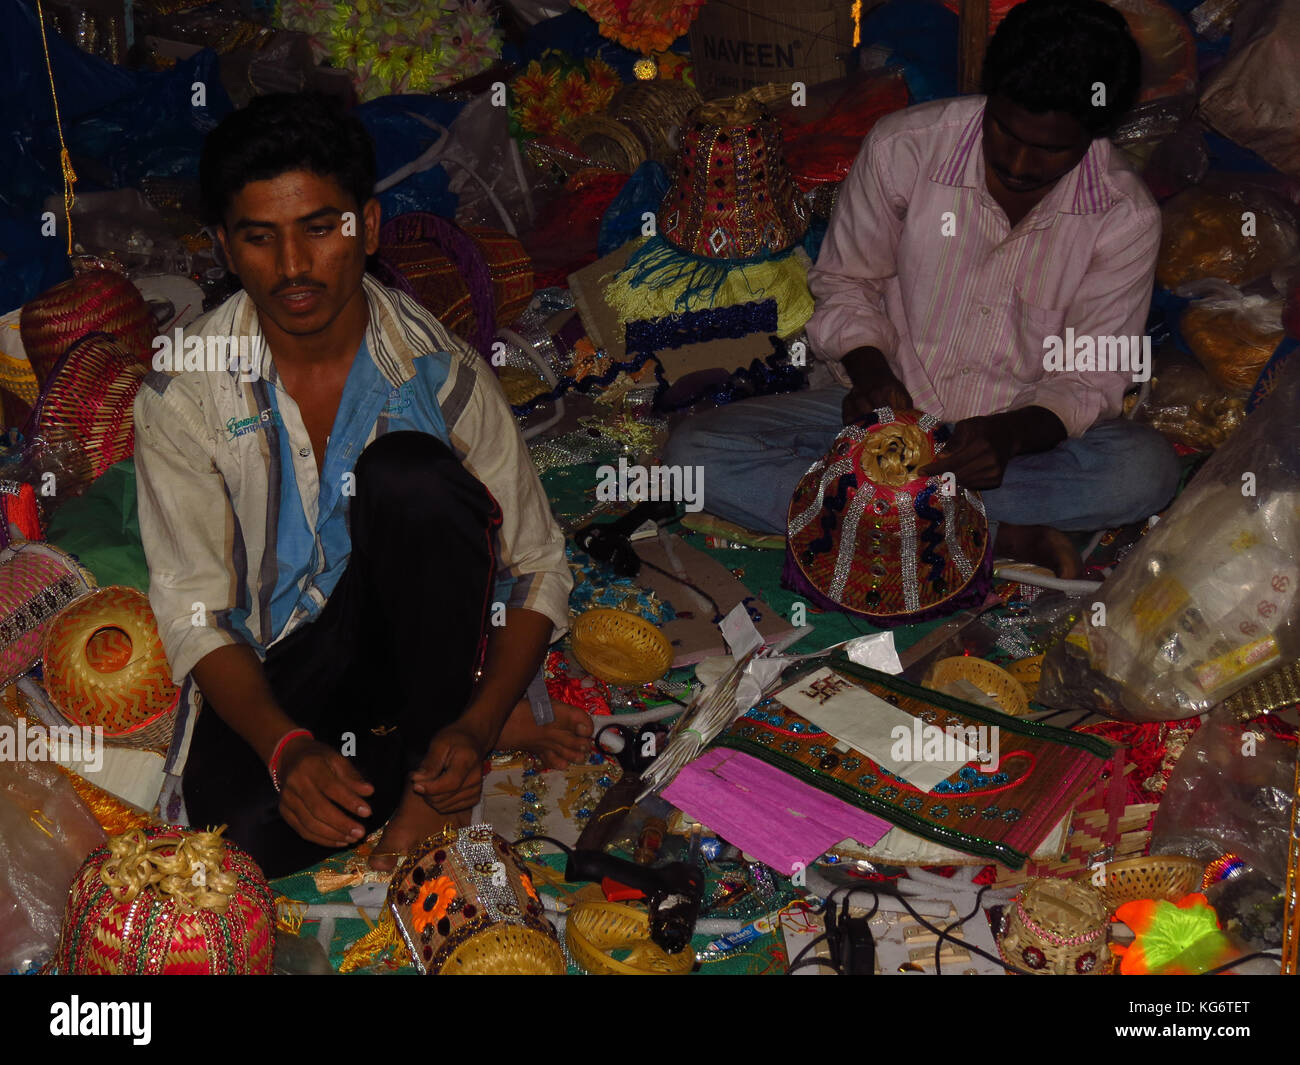 Indian craftsmen make traditional Diwali lanterns in their factory in India. - Stock Image